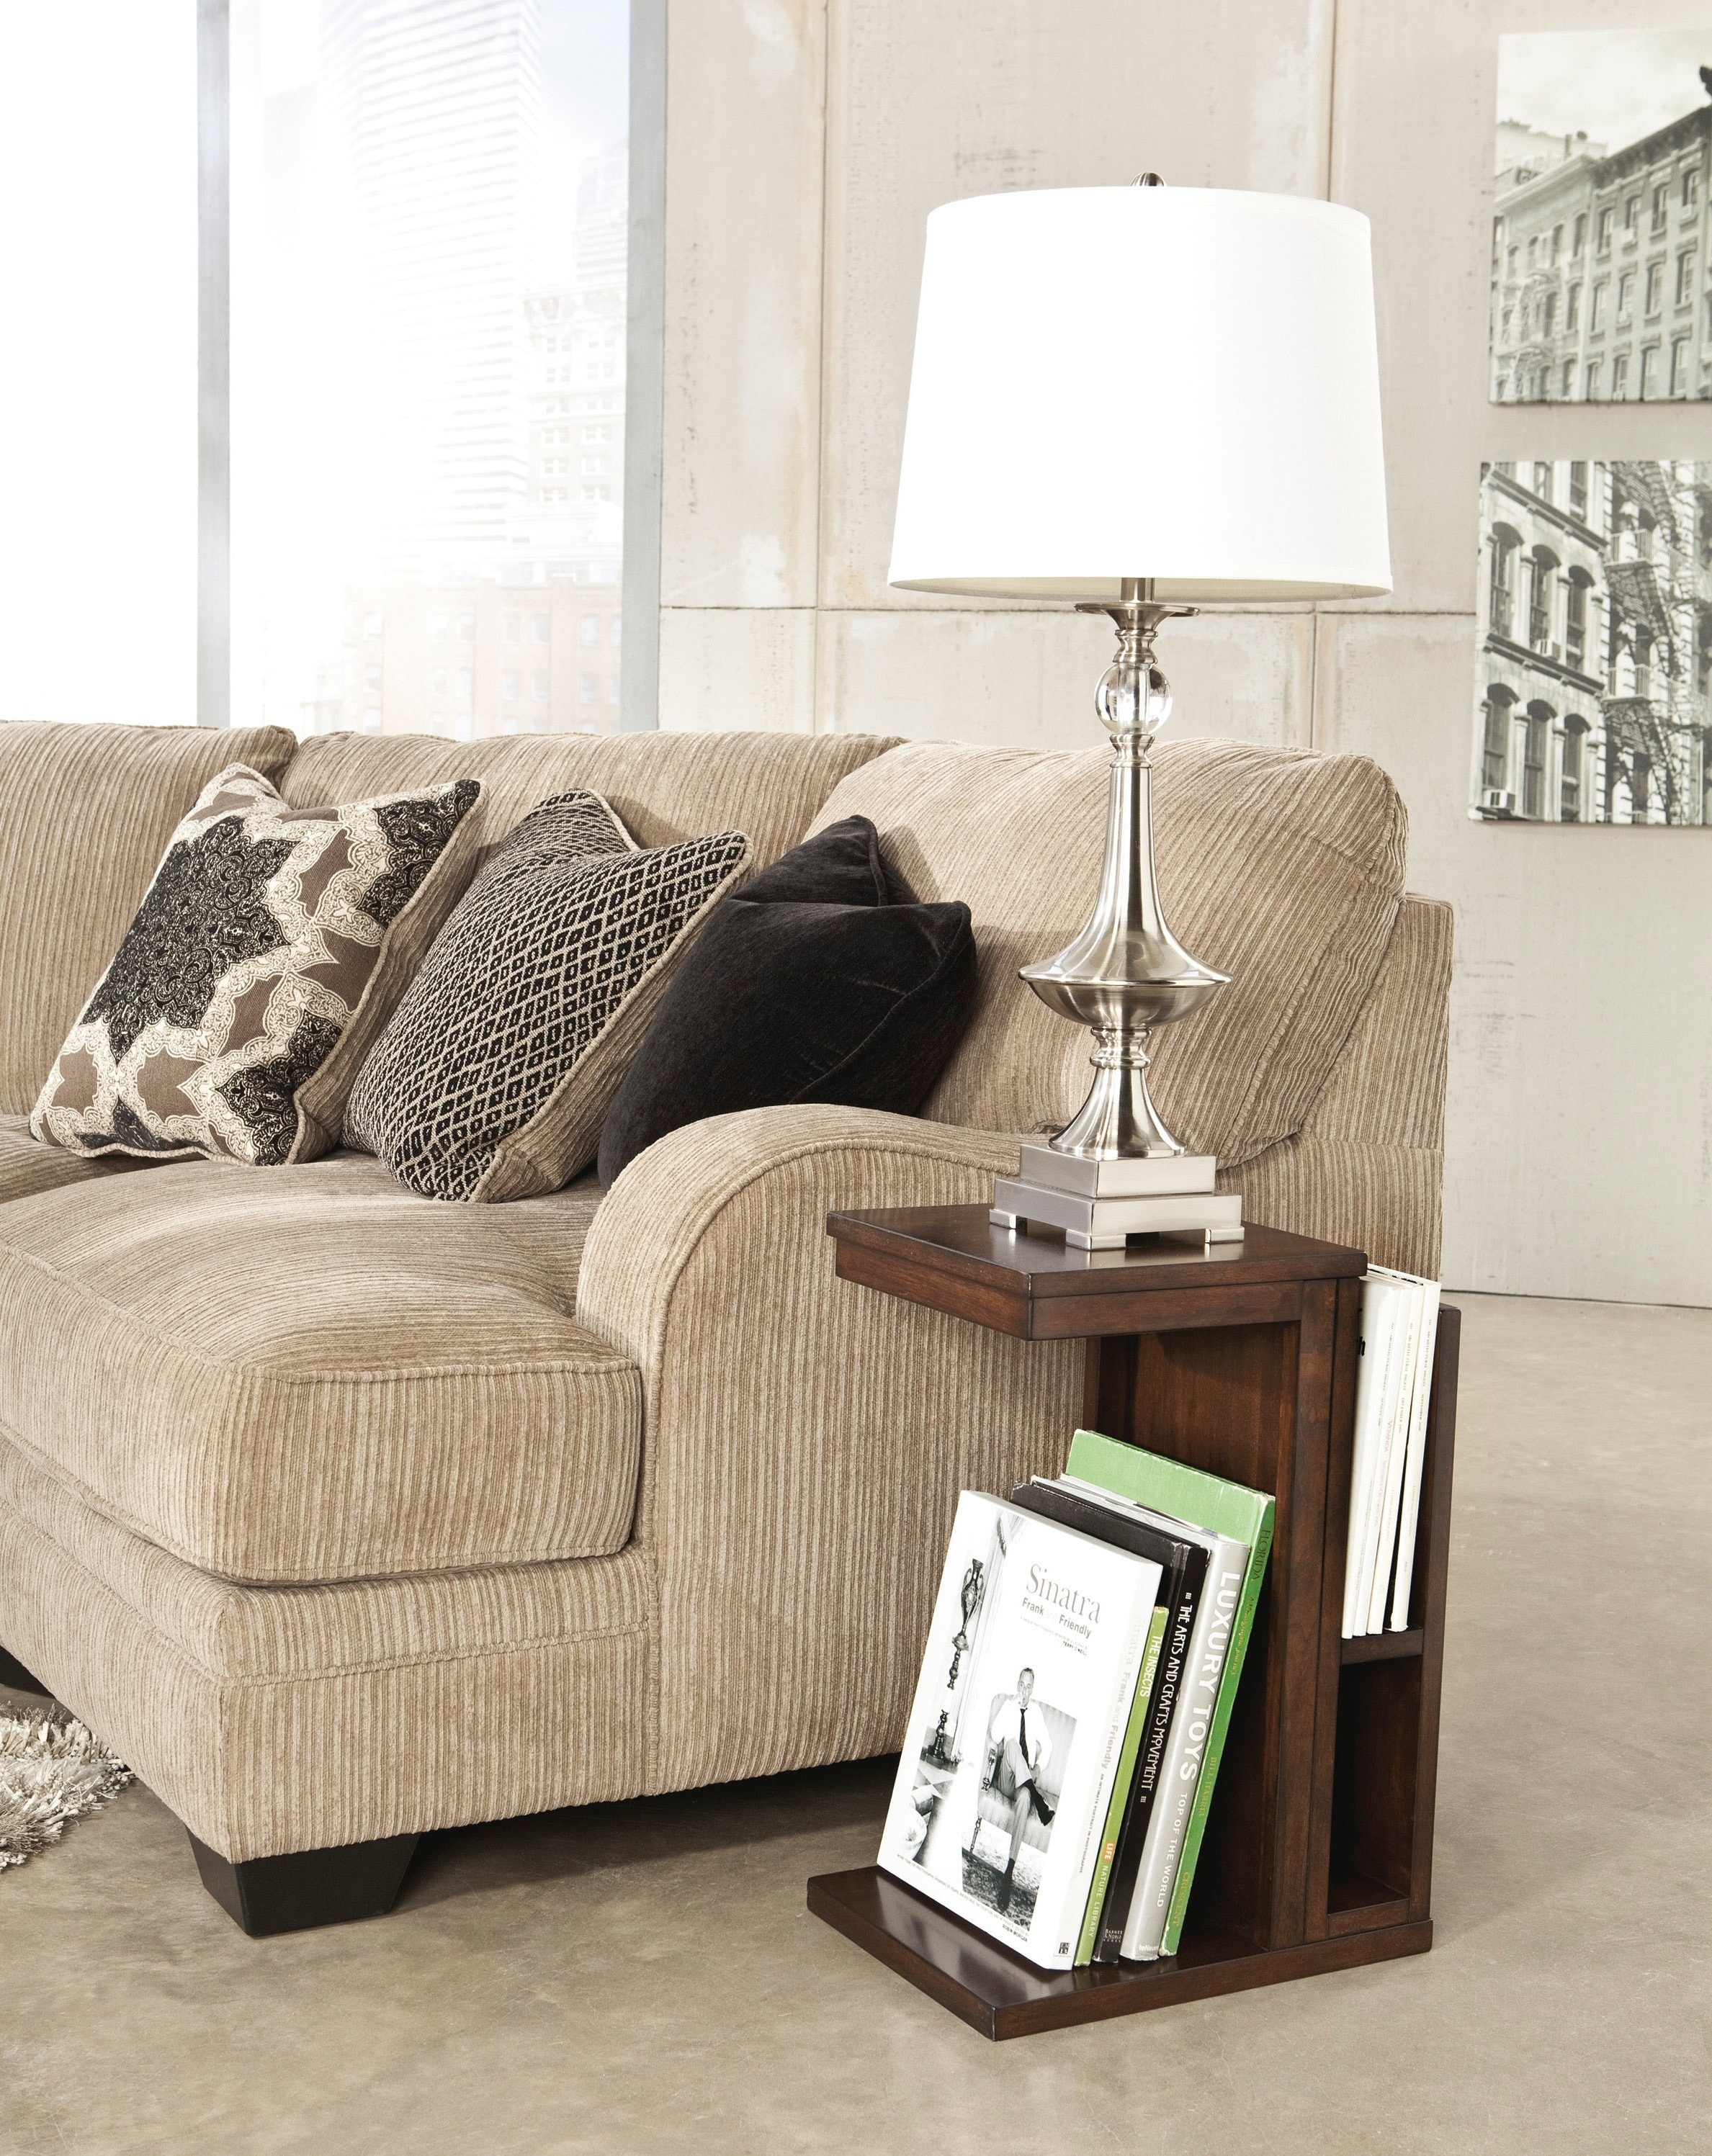 End Tables : Living Room Modern End Table Lamp Design With White for Well-liked Living Room End Table Lamps